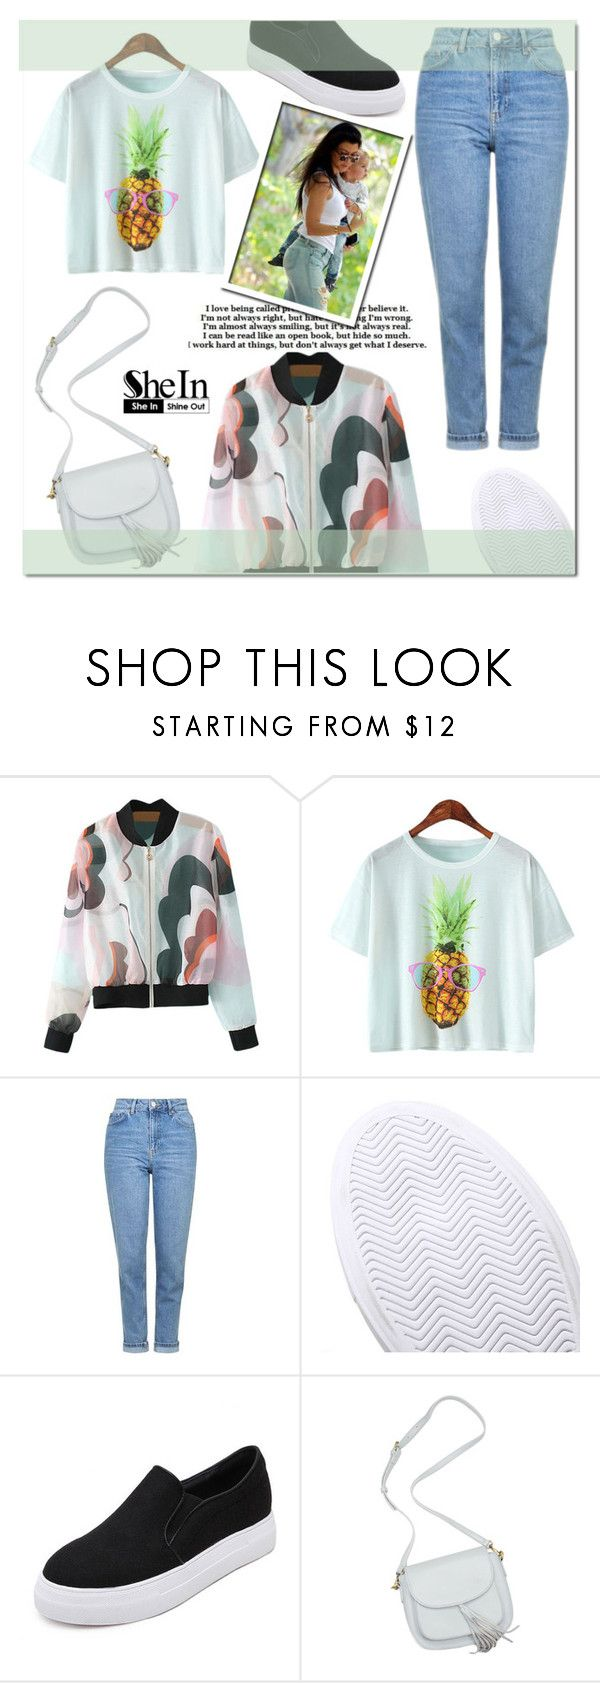 """SheIn 2"" by mini-kitty ❤ liked on Polyvore featuring Ananas, Topshop and shein"